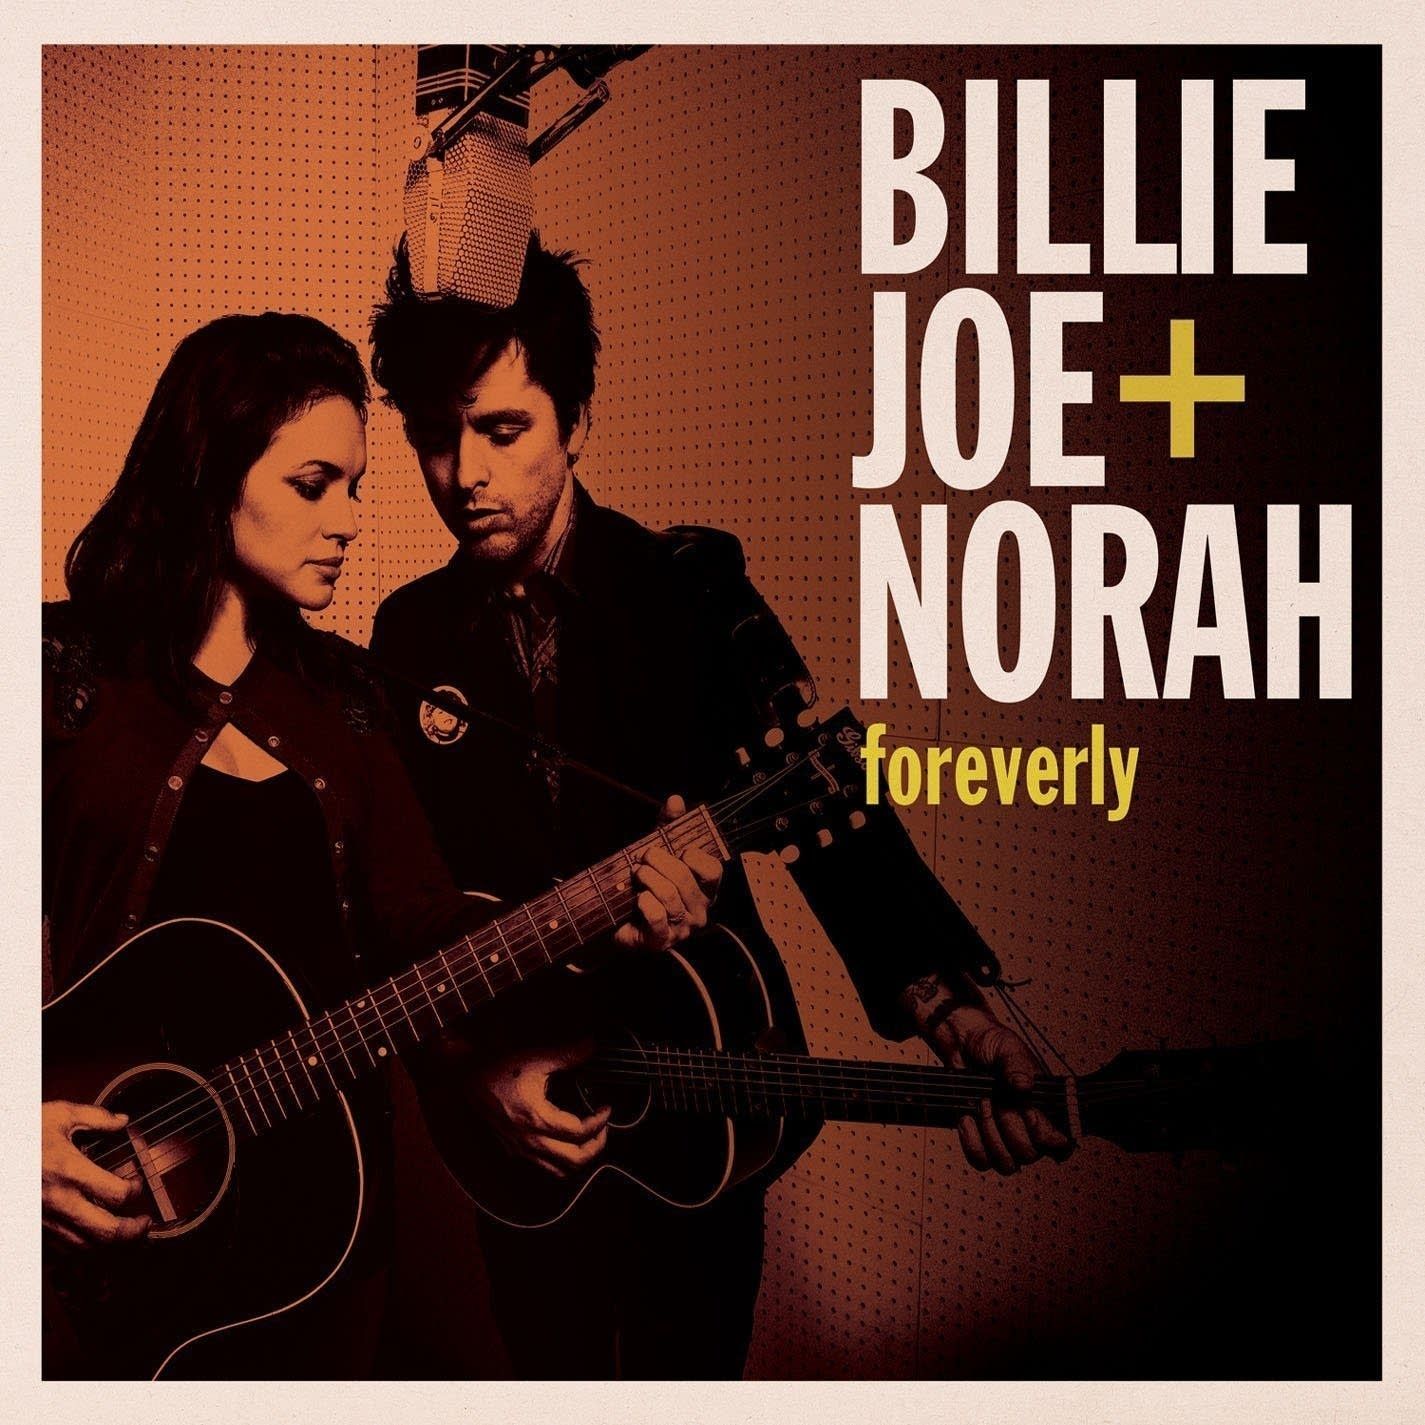 bille joe and norah foreverly album art